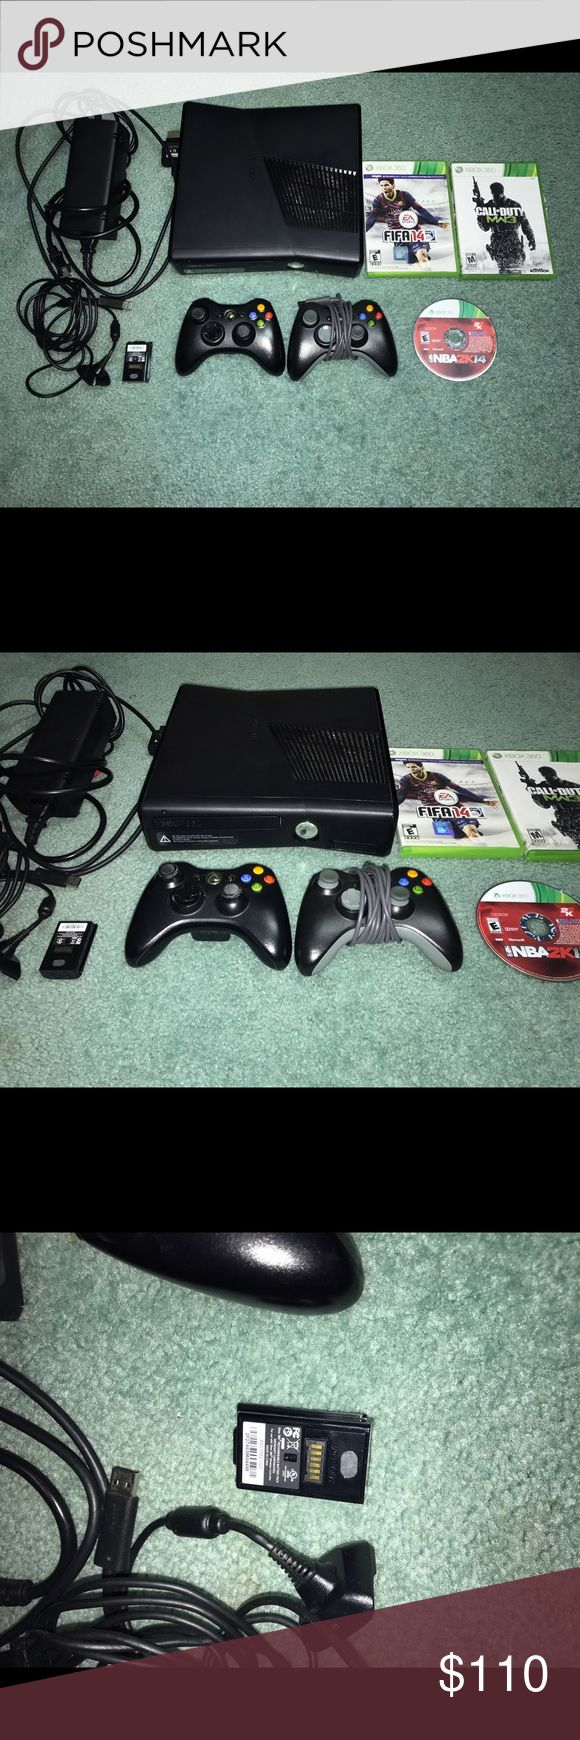 Xbox 360 with extra controller and 3 games This is an Xbox 360 used in great condition without a box. It comes with everything in the picture: all the wires and the console, 2 controllers, an extra external battery with charger for the controller, 3 games which are NBA 2k14, MW3, and Fifa 14. This is a Great Deal so catch it fast!! Microsoft Other